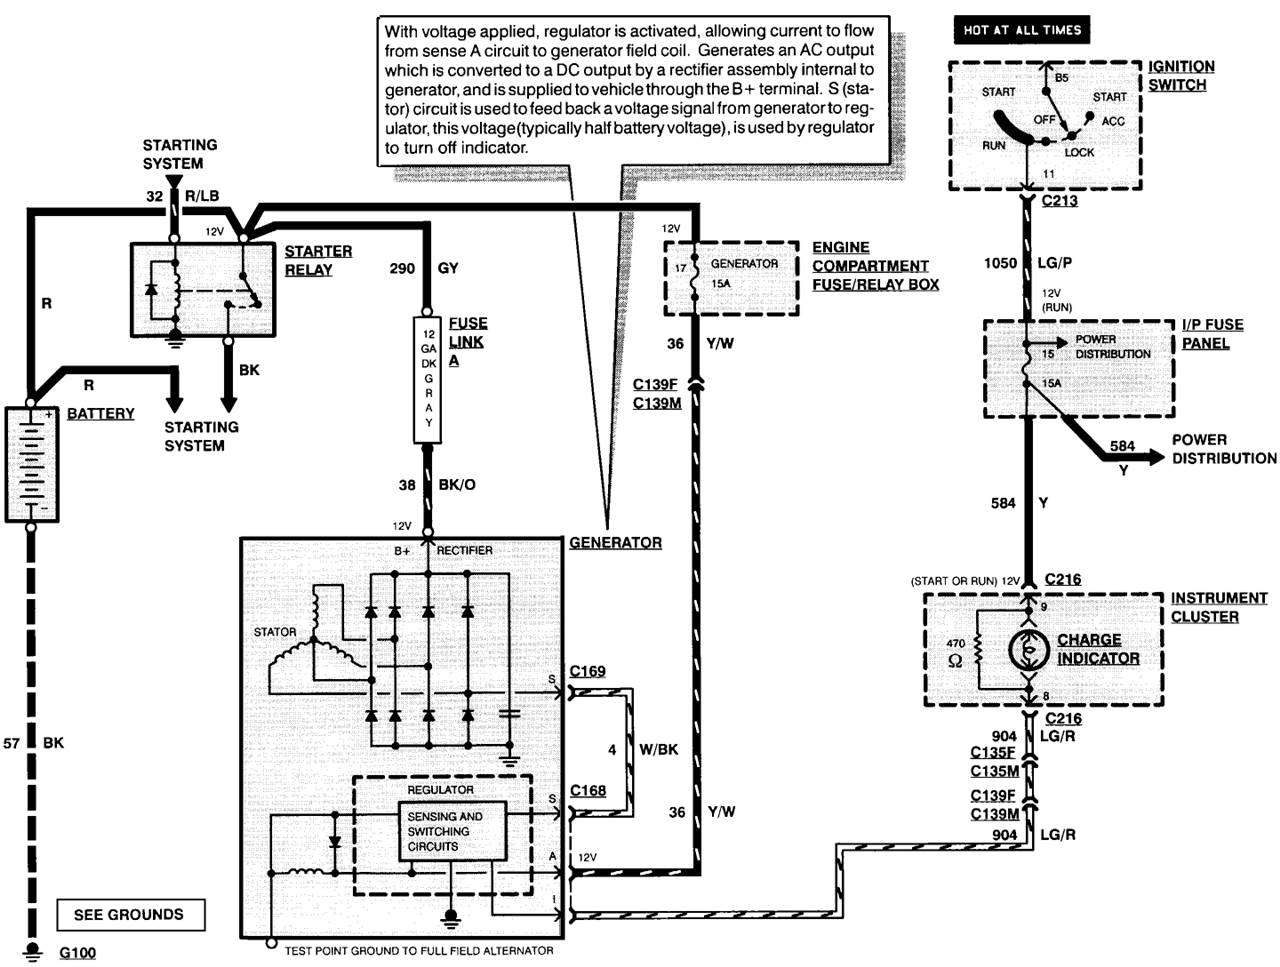 WIRING DIAGRAM ALTERNATOR - Auto Electrical Wiring Diagram on 1993 dodge w250 wiring diagram, 1970 dodge challenger wiring diagram, dodge headlight wiring diagram, 1997 dodge ram 1500 wiring diagram, dodge caravan wiring diagram, dodge ram 2500 wiring diagram, dodge engine wiring diagram, 1974 dodge challenger wiring diagram, dodge fuel gauge wiring diagram, 1979 f250 supercab fuse panel diagram, dodge starter relay wiring diagram, 92 plymouth voyager wiring diagram, 1973 charger wiring diagram, 2001 dodge stratus radio wiring diagram, 1973 dodge challenger wiring diagram, dodge starting system wiring diagram, dodge windshield wiper motor wiring diagram, dodge fuel injector wiring diagram, dodge wiring diagram wires, 1998 dodge stratus radio wiring diagram,